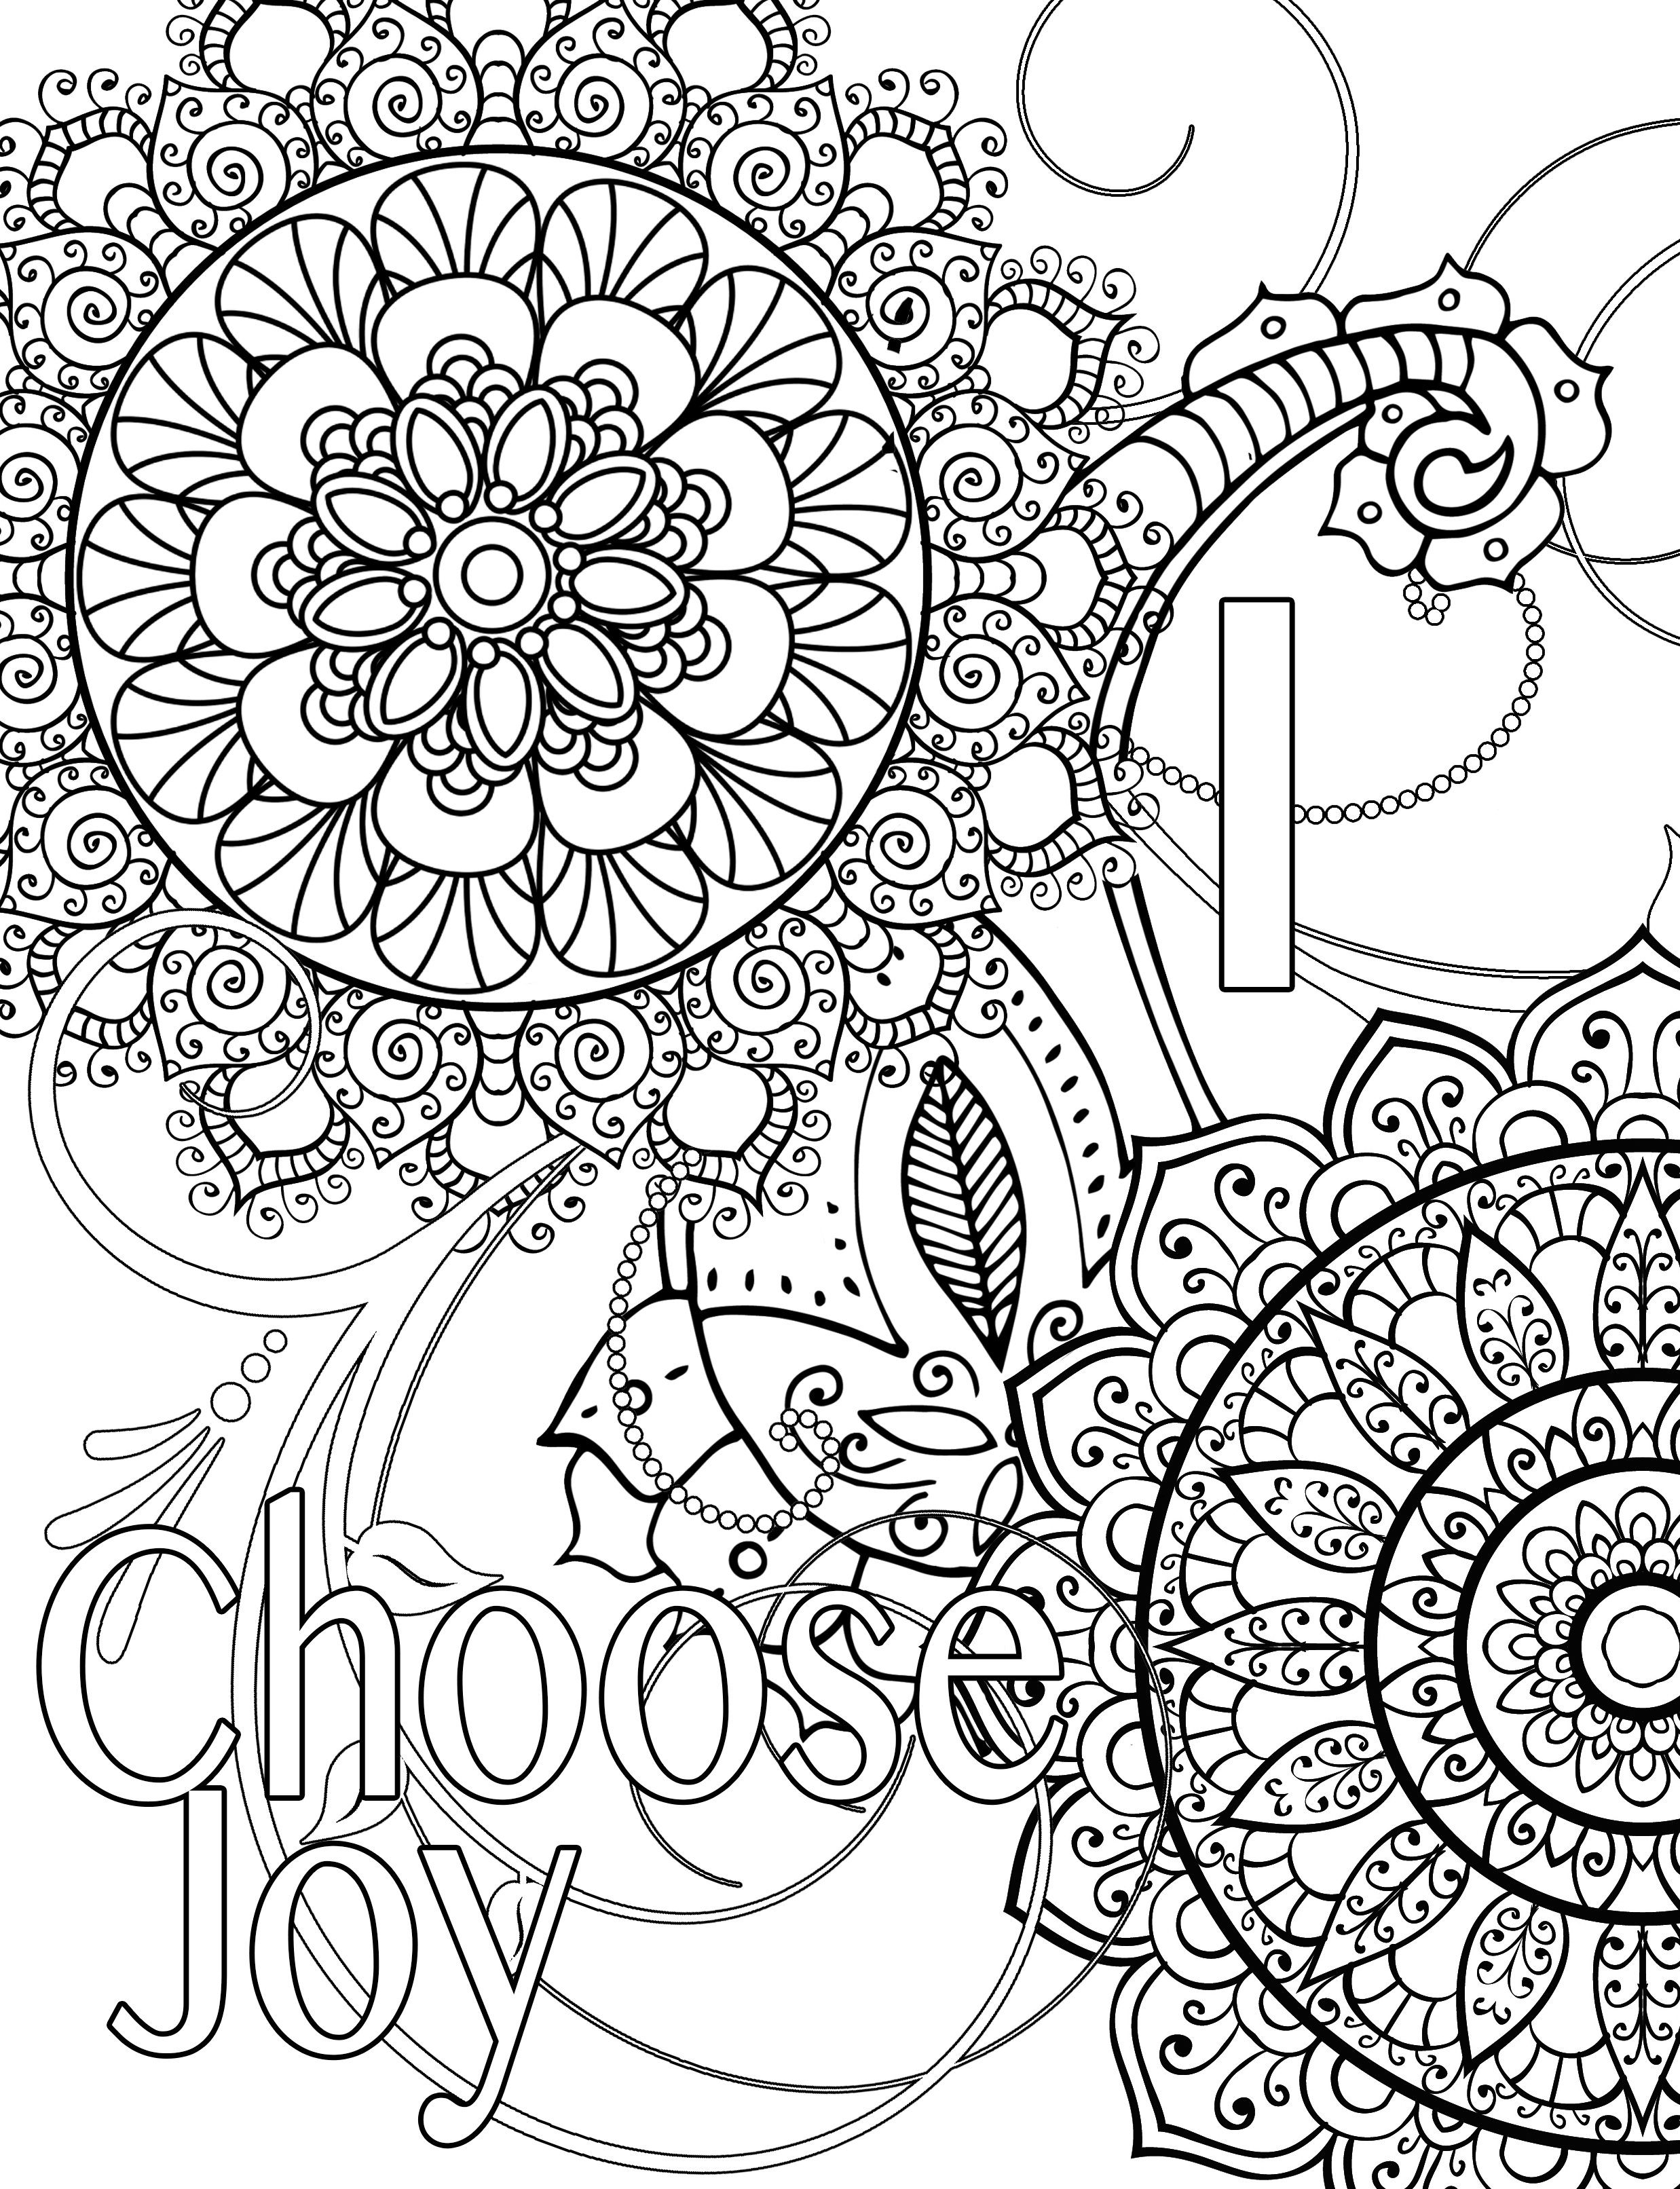 Words Coloring Page I Choose Joy Coloring Pages Inspirational Bible Coloring Pages Coloring Books